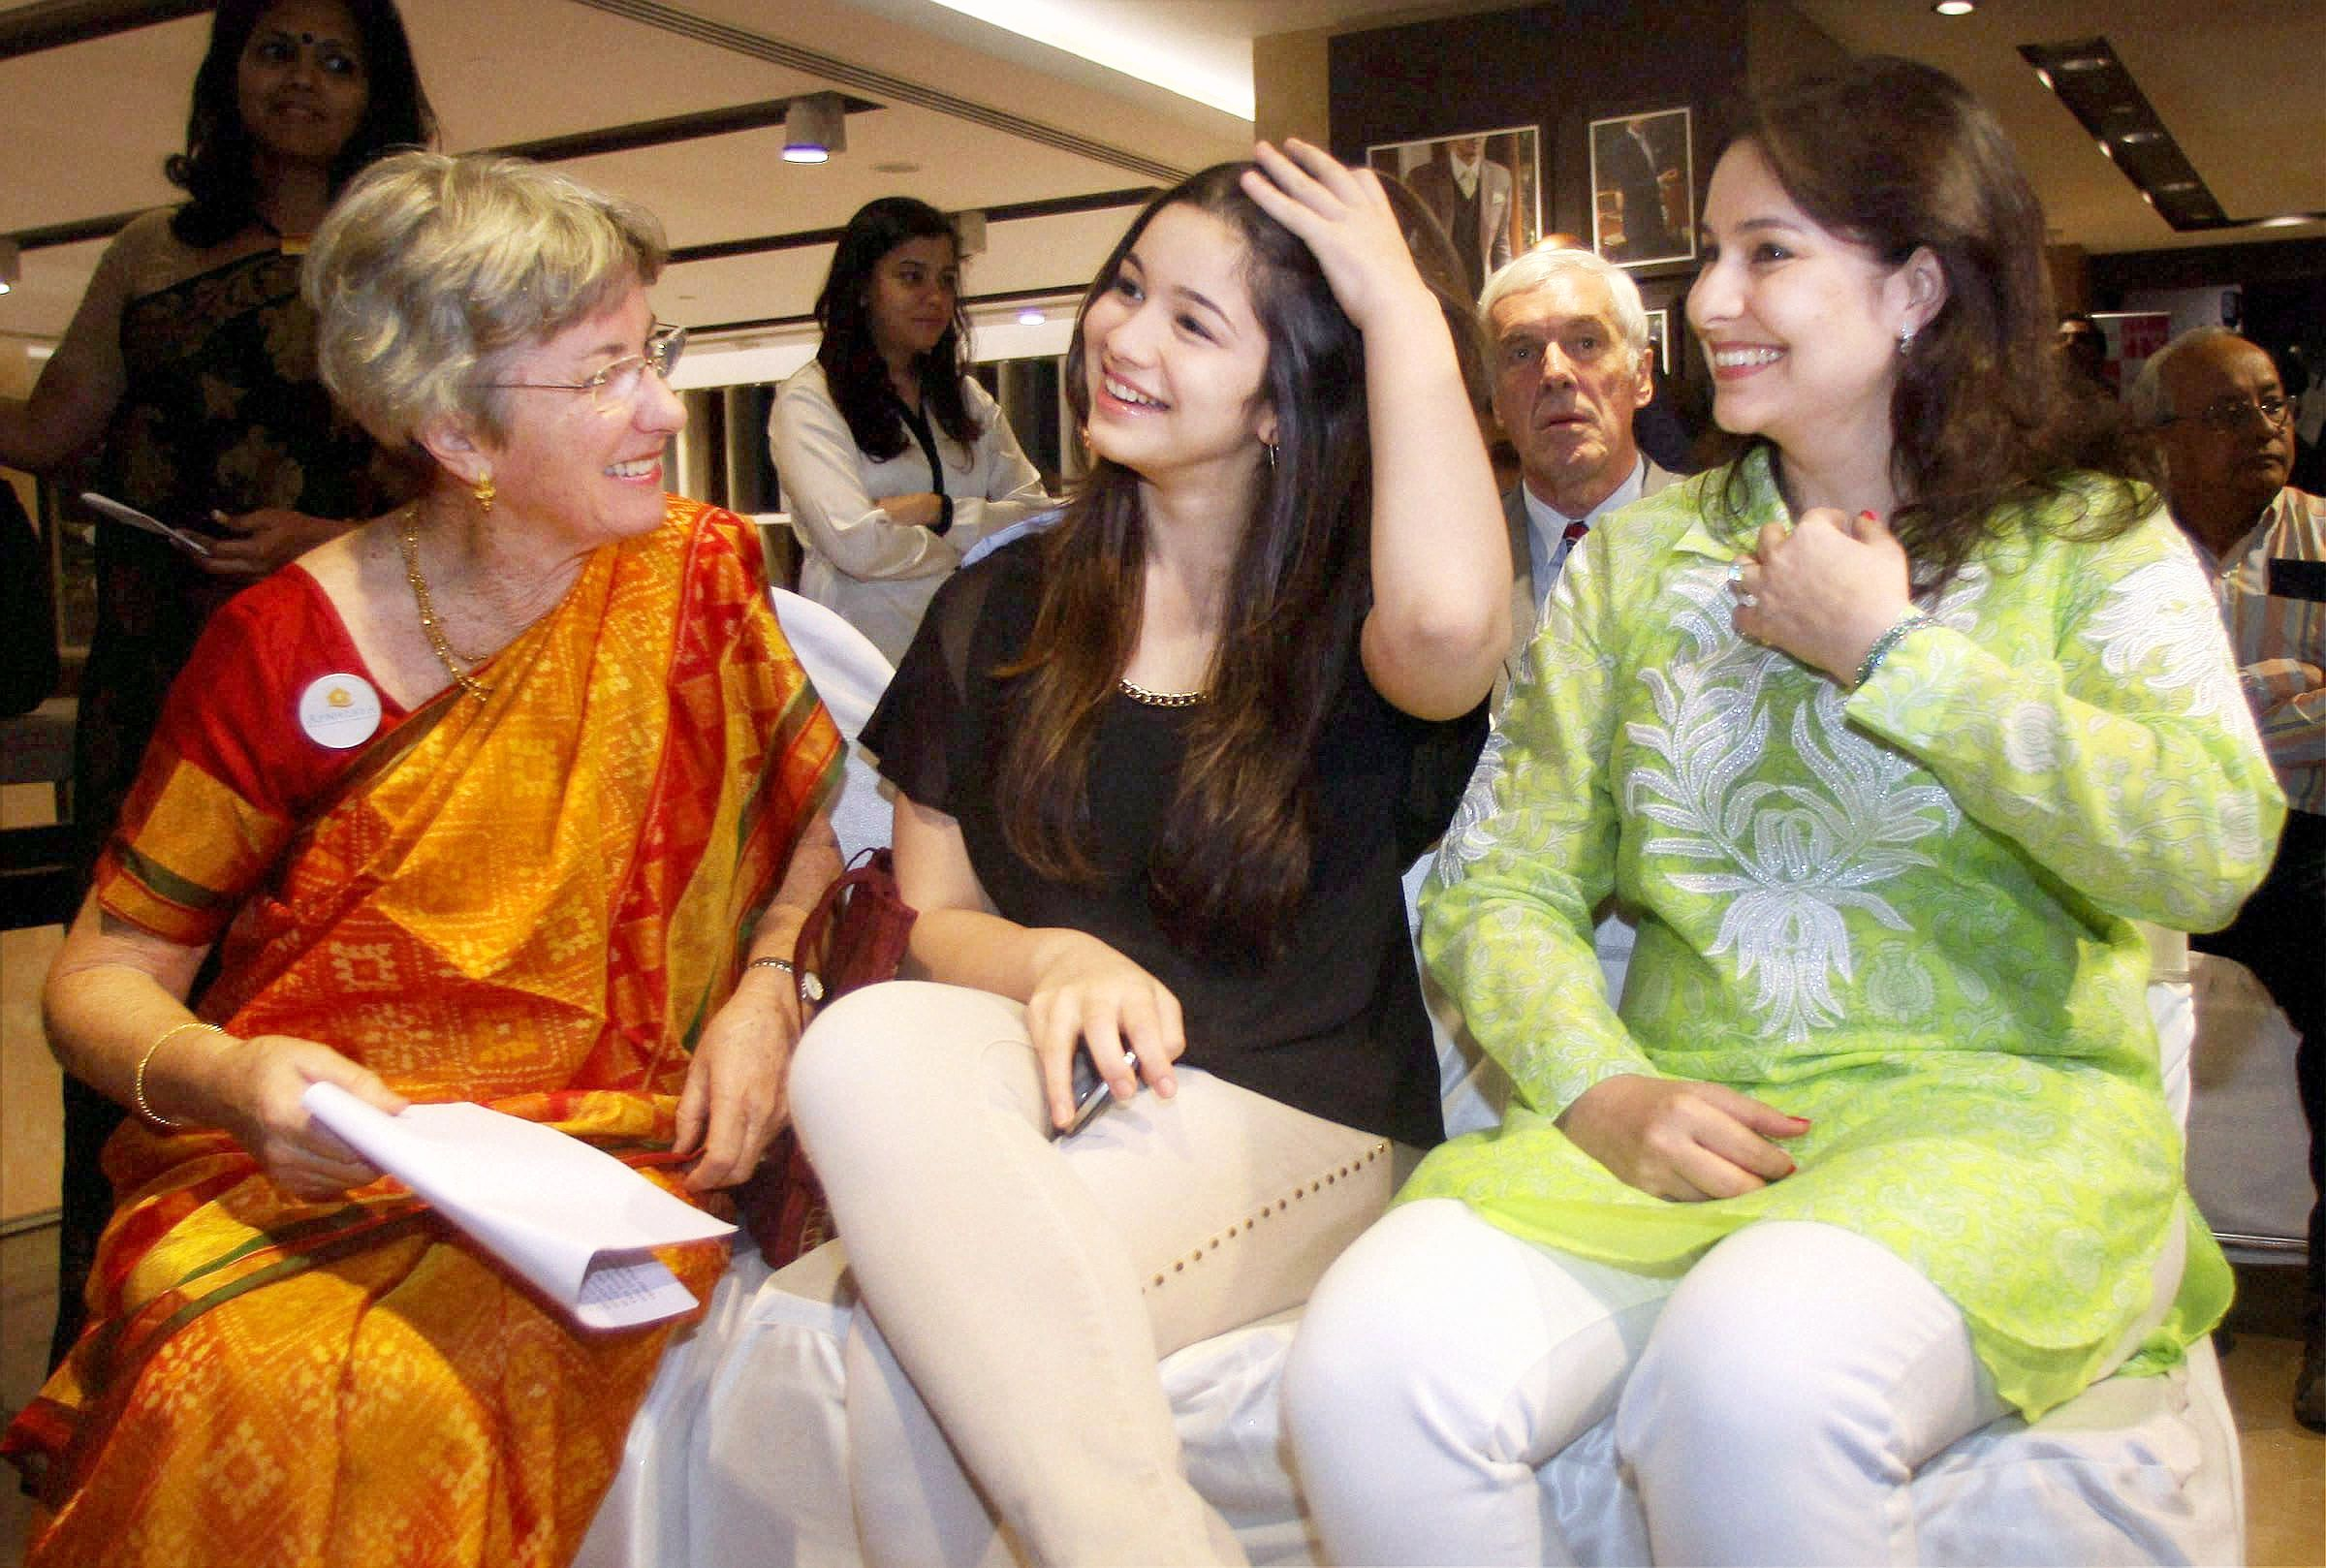 Anjali Tendulkar and Sara along with Sachin's Mother In Law Annabel were spotted at a charity event in Mumbai